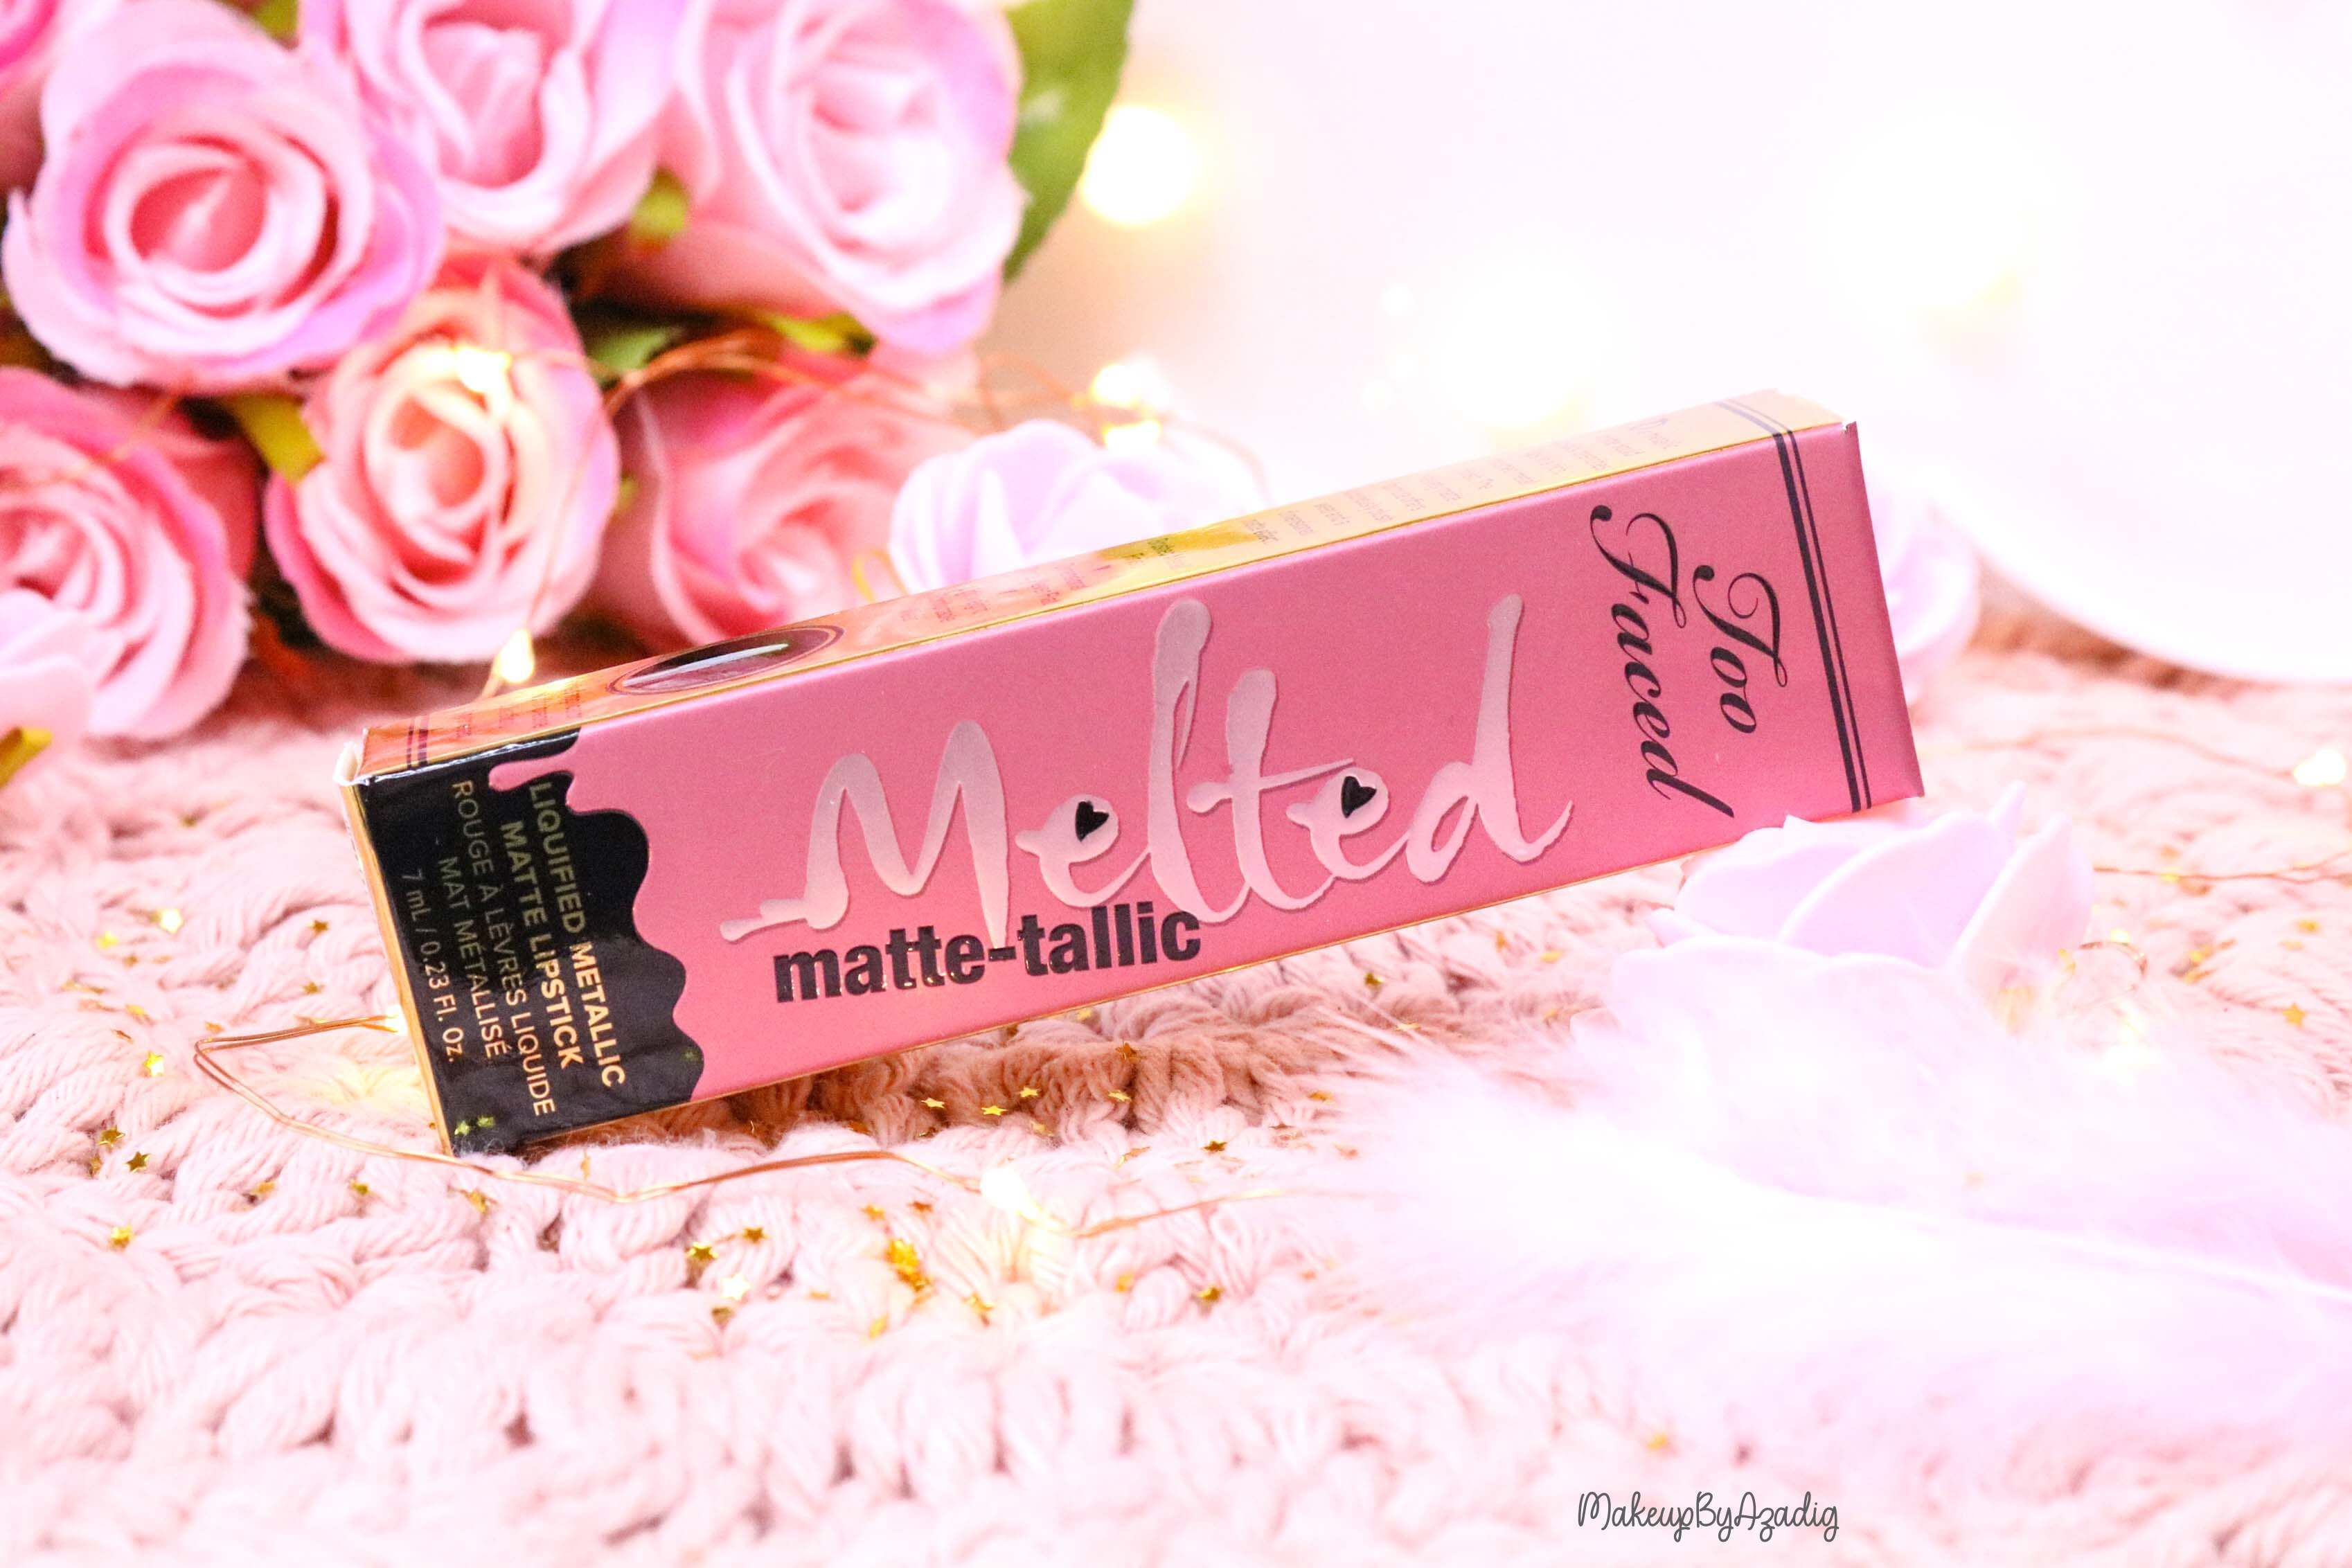 revue-melted-matte-tallic-rouge-a-levres-breakup-makeup-makeupbyazadig-sortie-france-influencer-swatch-avis-prix-too-faced